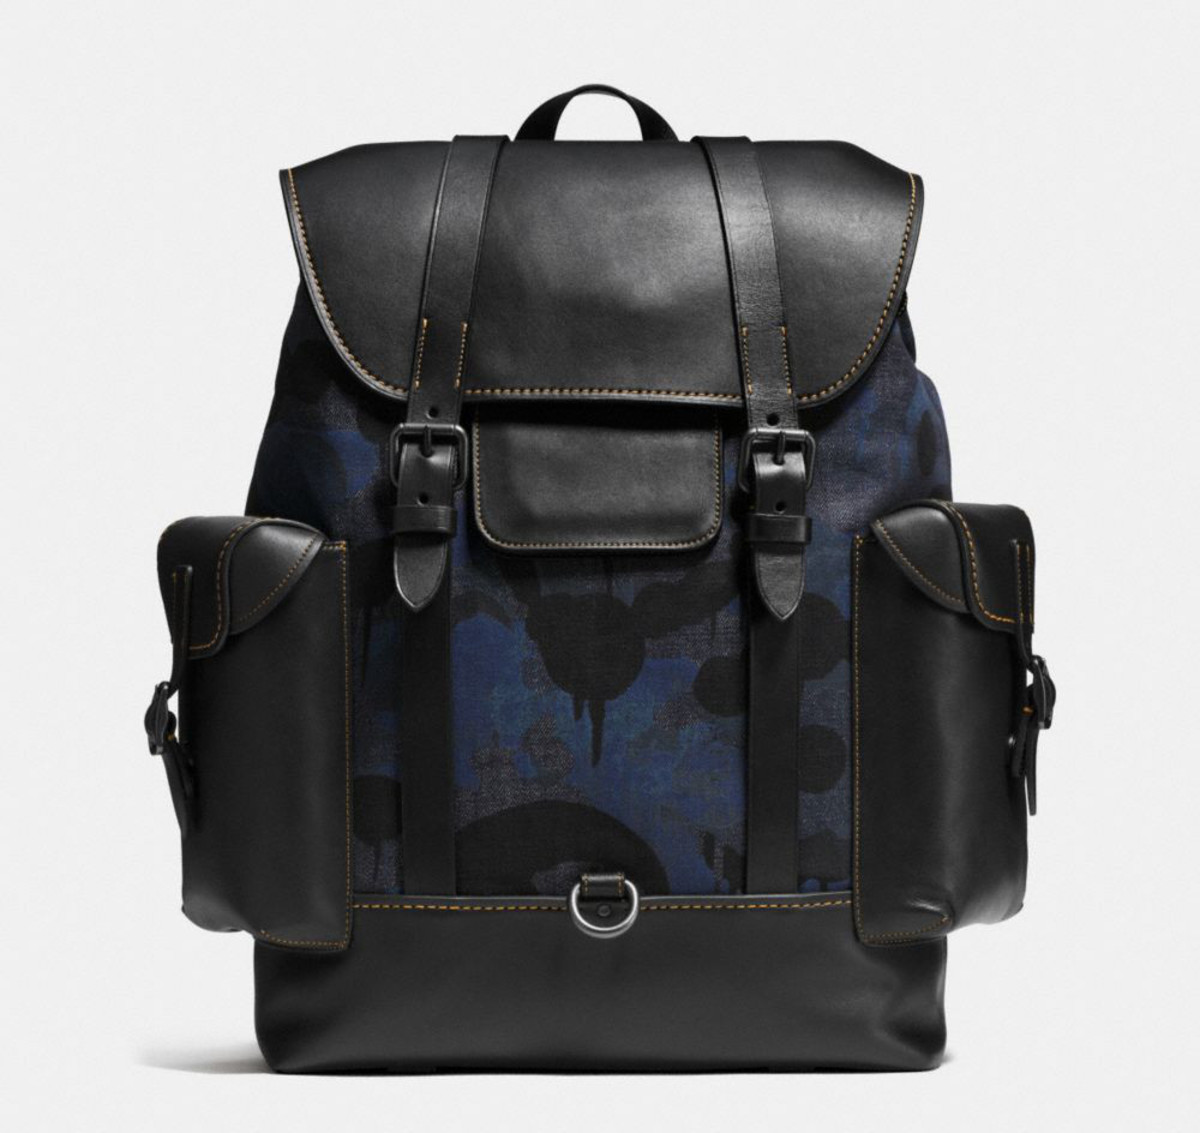 freshness-finds-luxury-camo-backpack-04.jpg